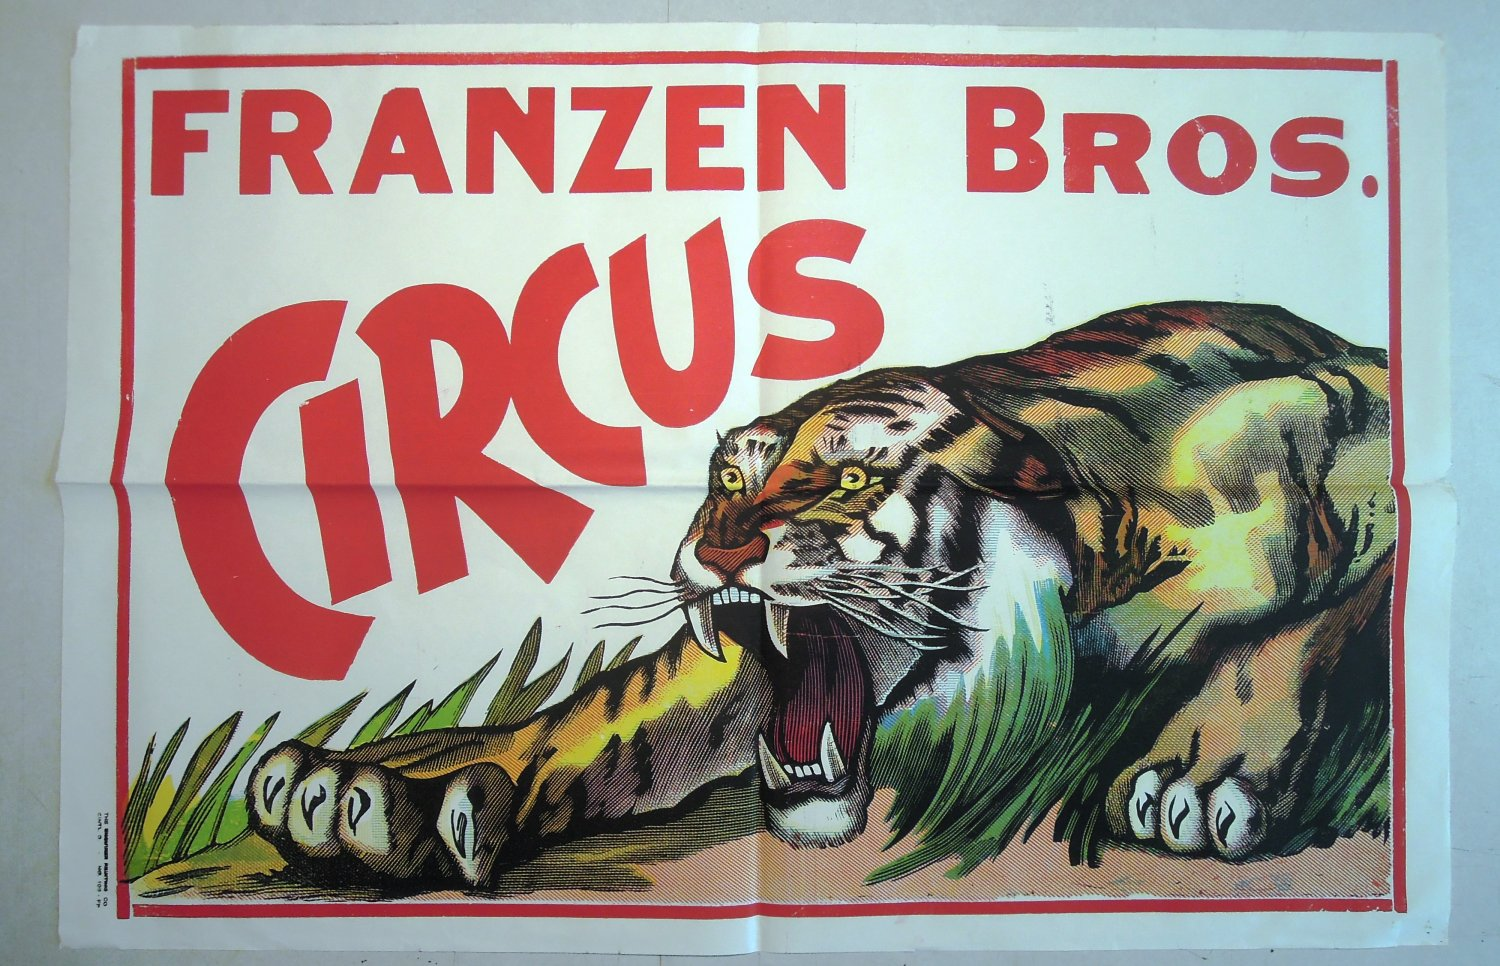 Franzen Brothers Circus Vintage Poster Roaring Crouching Tiger  3